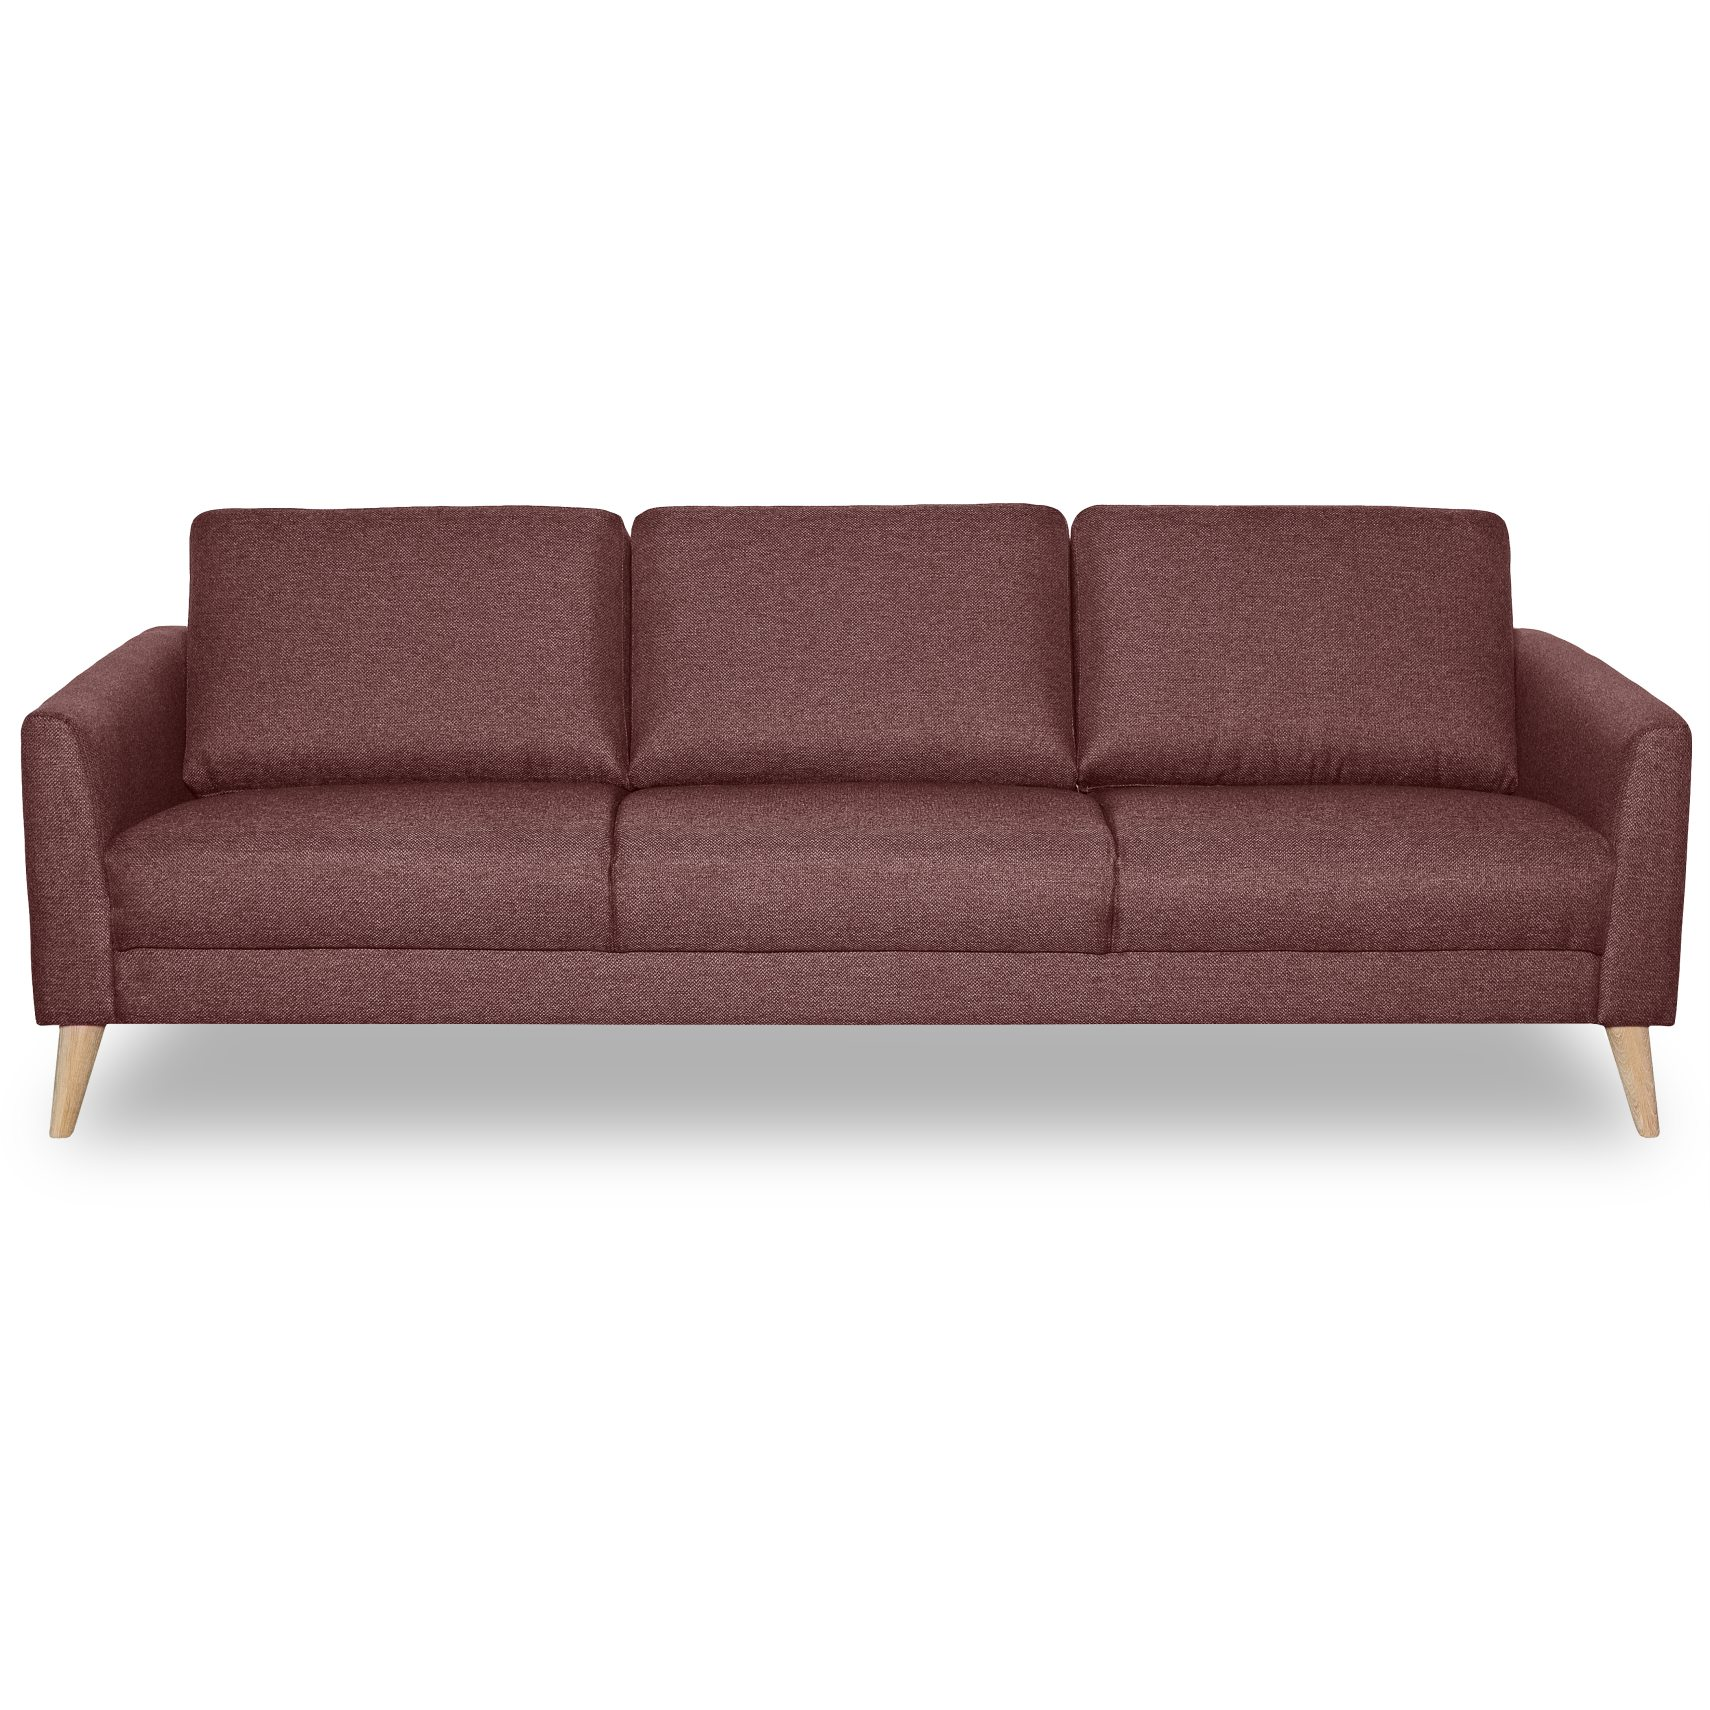 Lotus 3 pers Sofa - Golf Apple stof og ben i hvidolieret eg